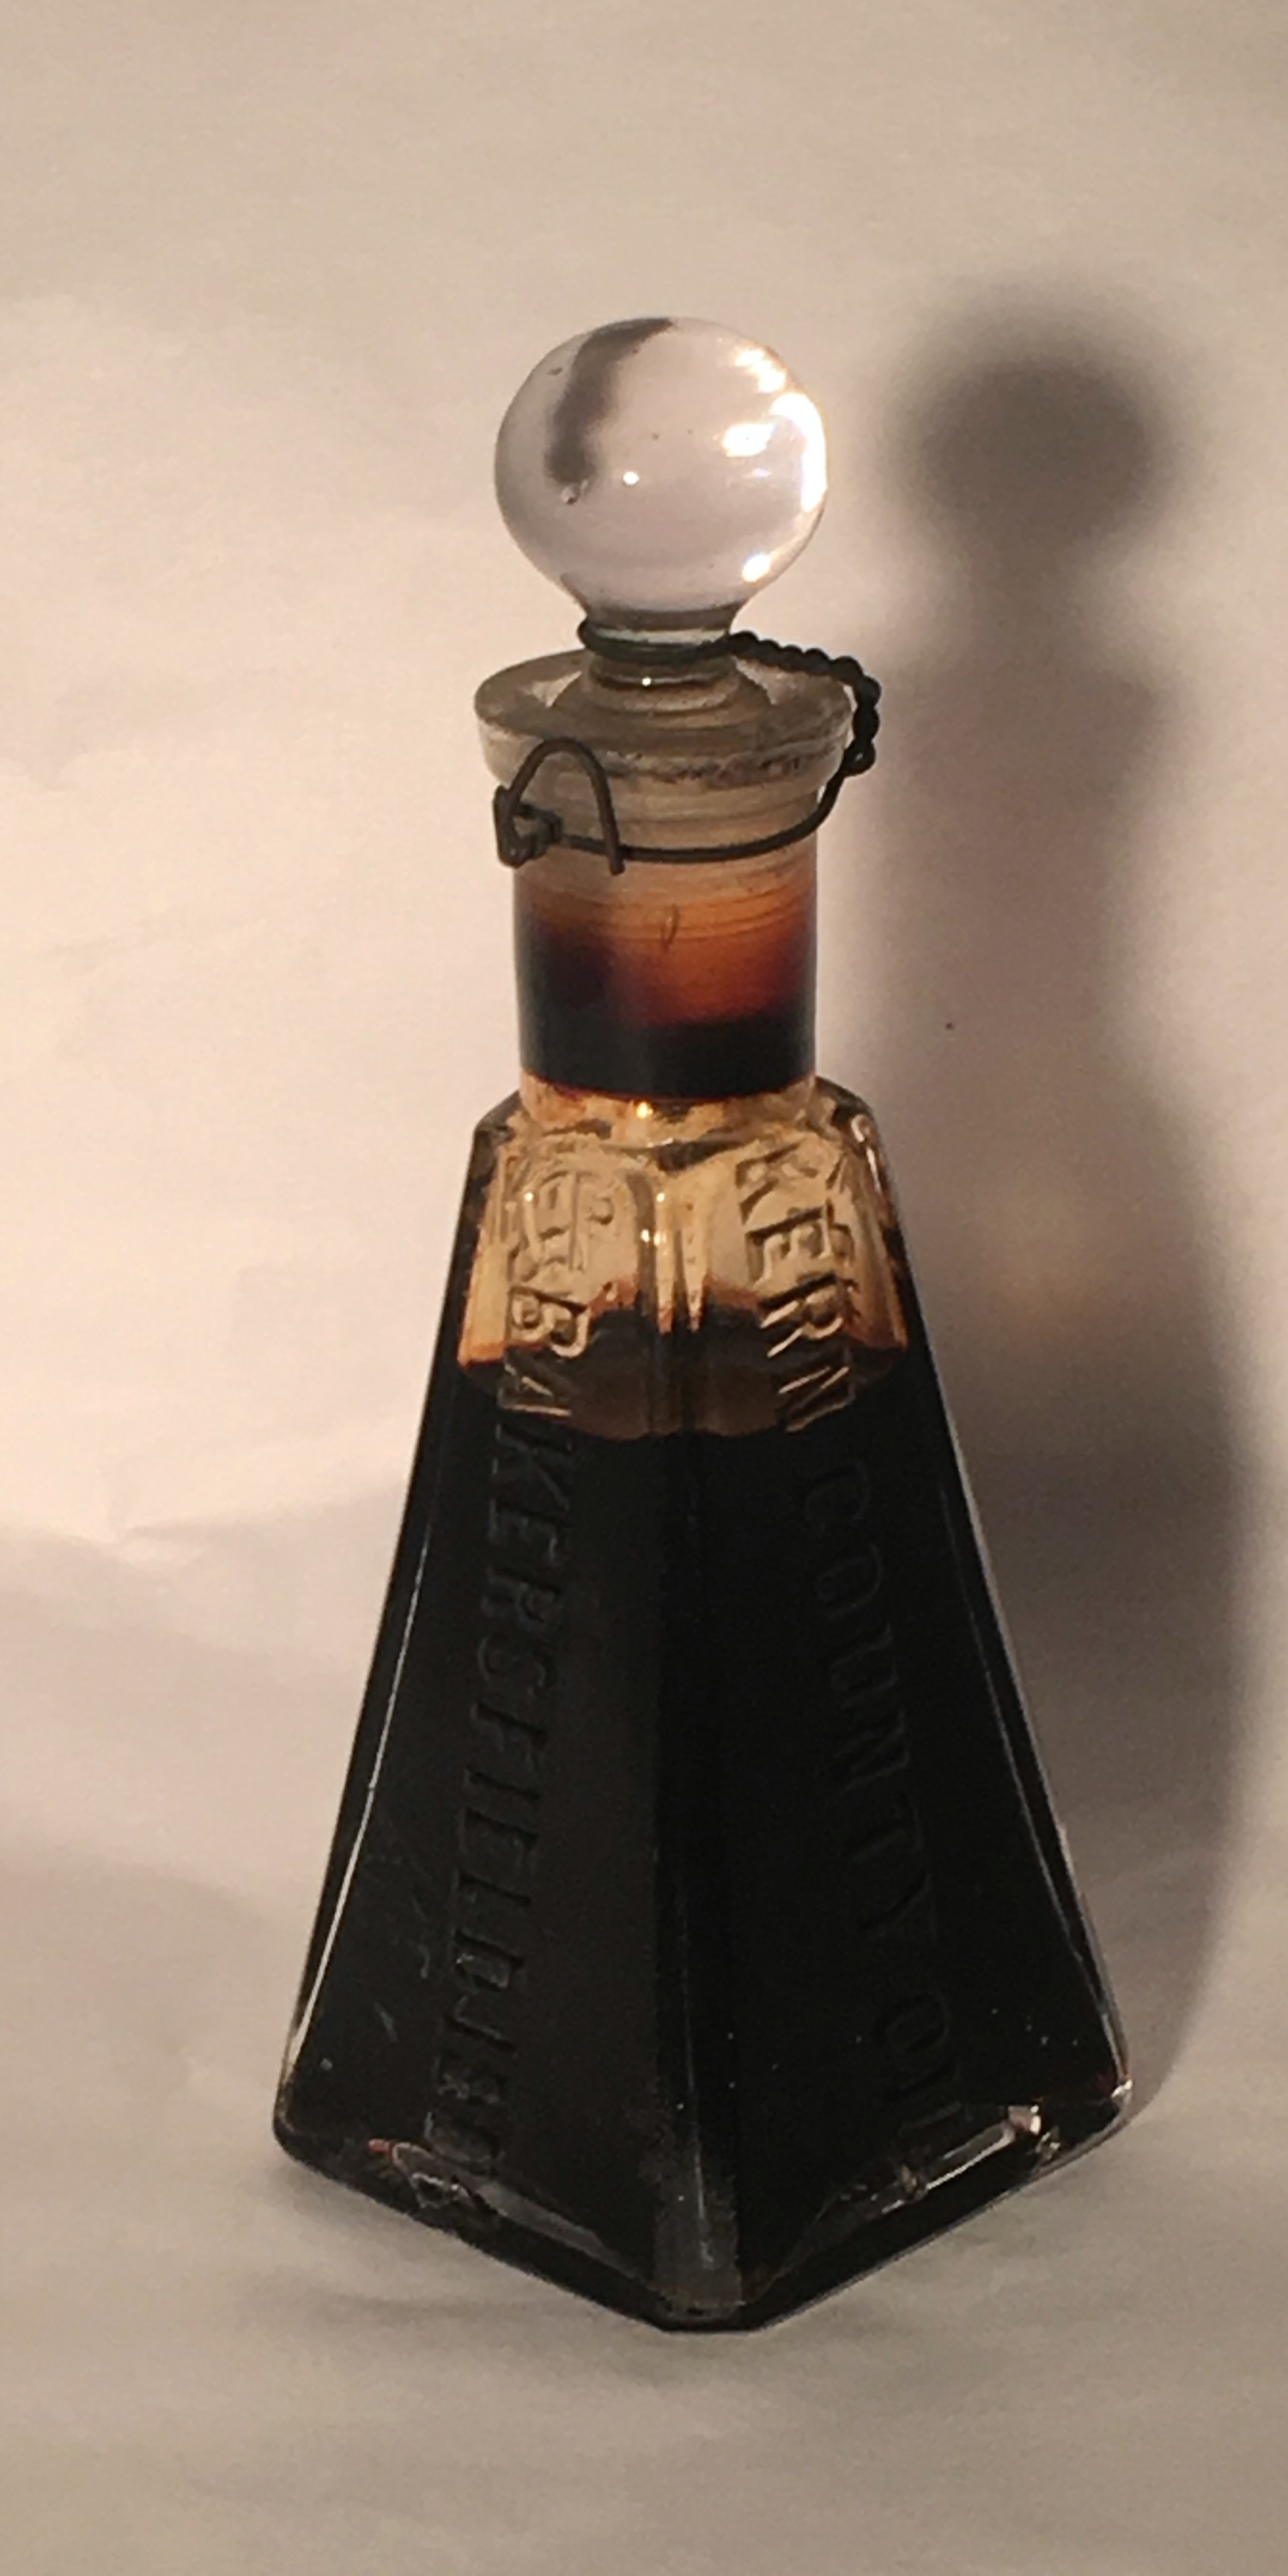 A four sided glass jar with a stopper filled with black oil.